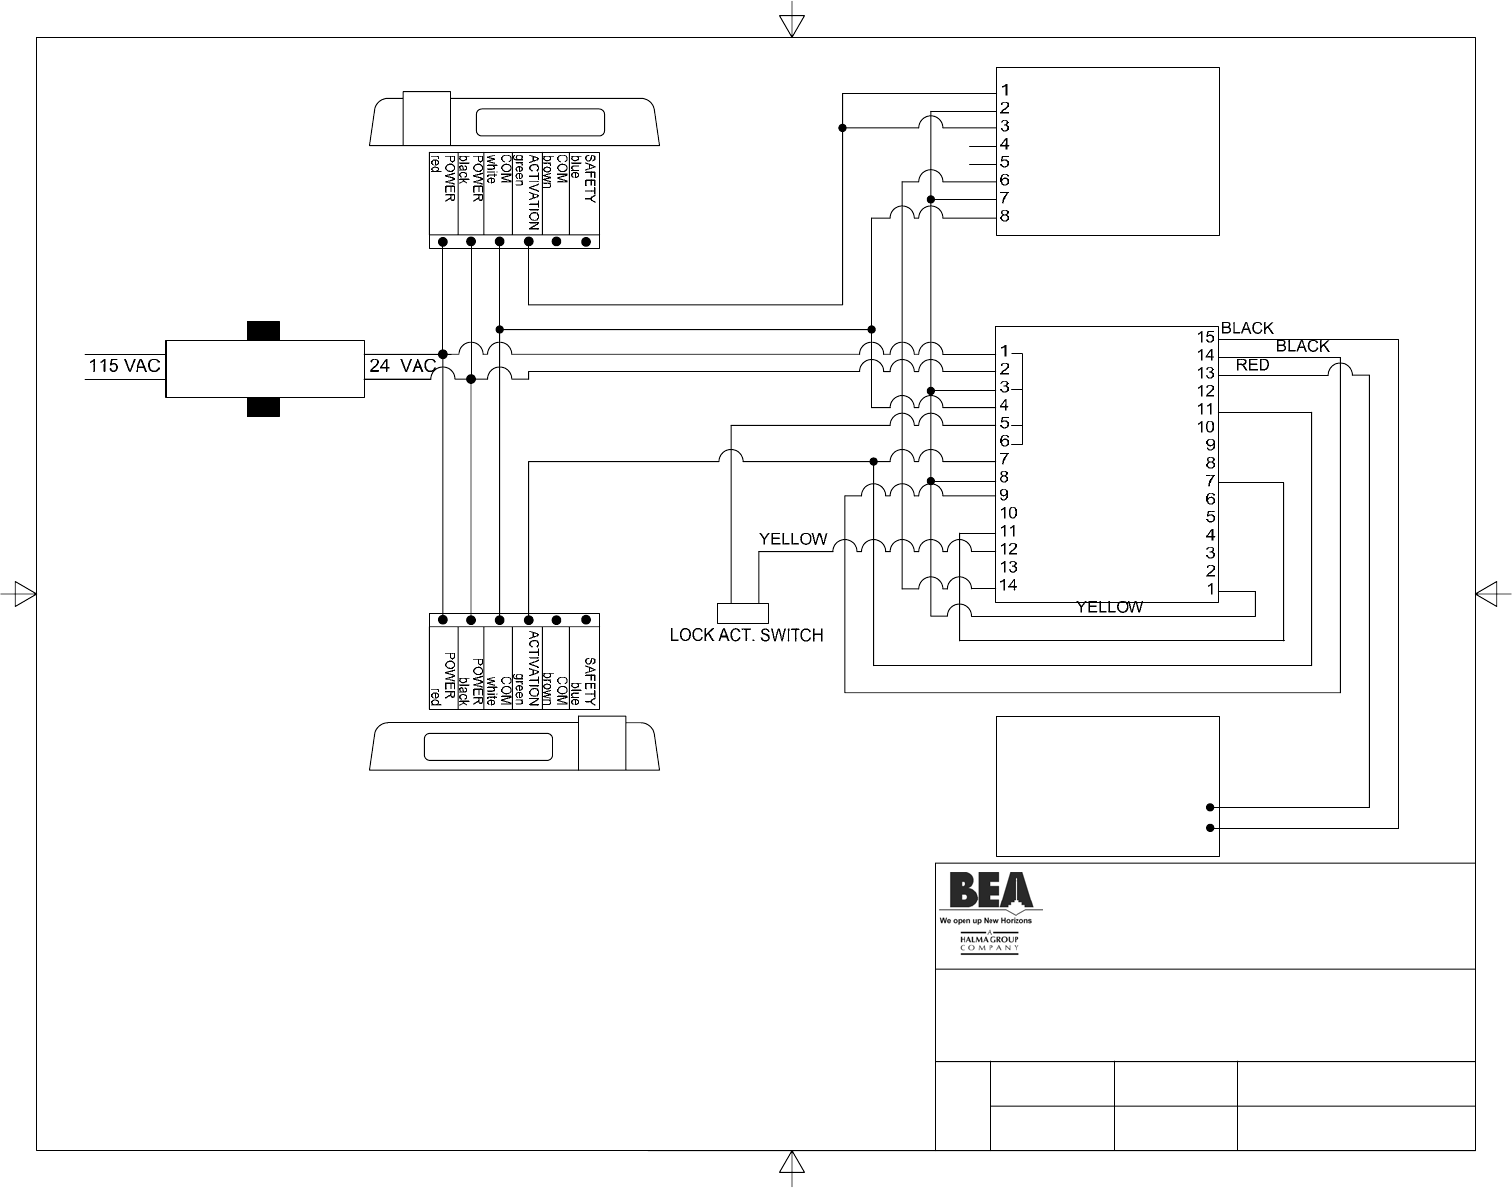 BEA 1100 LE: GYROTECH 1100 WITH WIZARD II, GT 215210 LOCK ... Bea Lo Wiring Diagram on